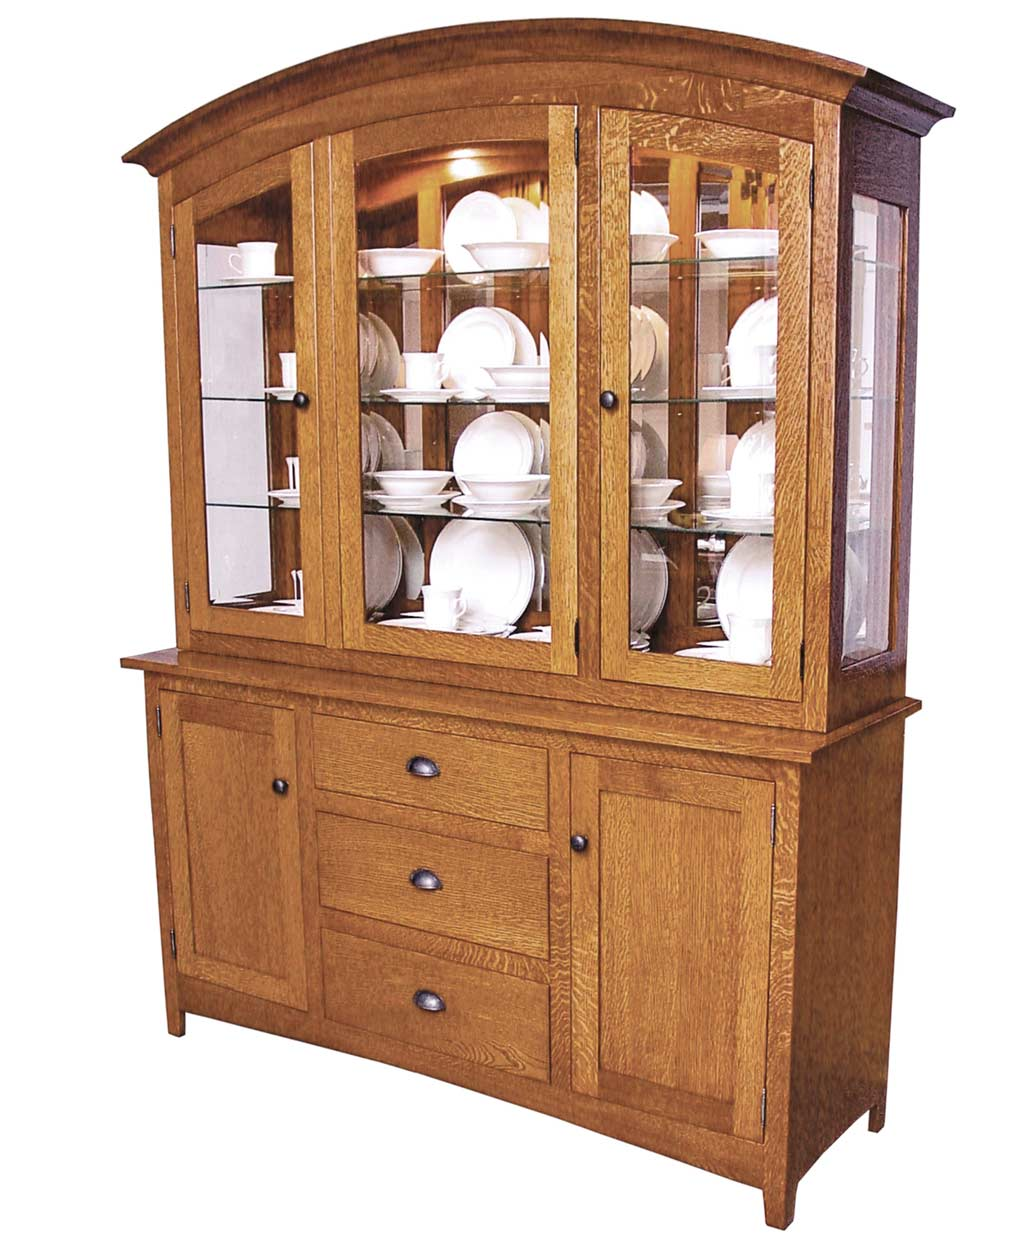 Amish Style Kitchen Cabinets: Old Century Mission Hutch